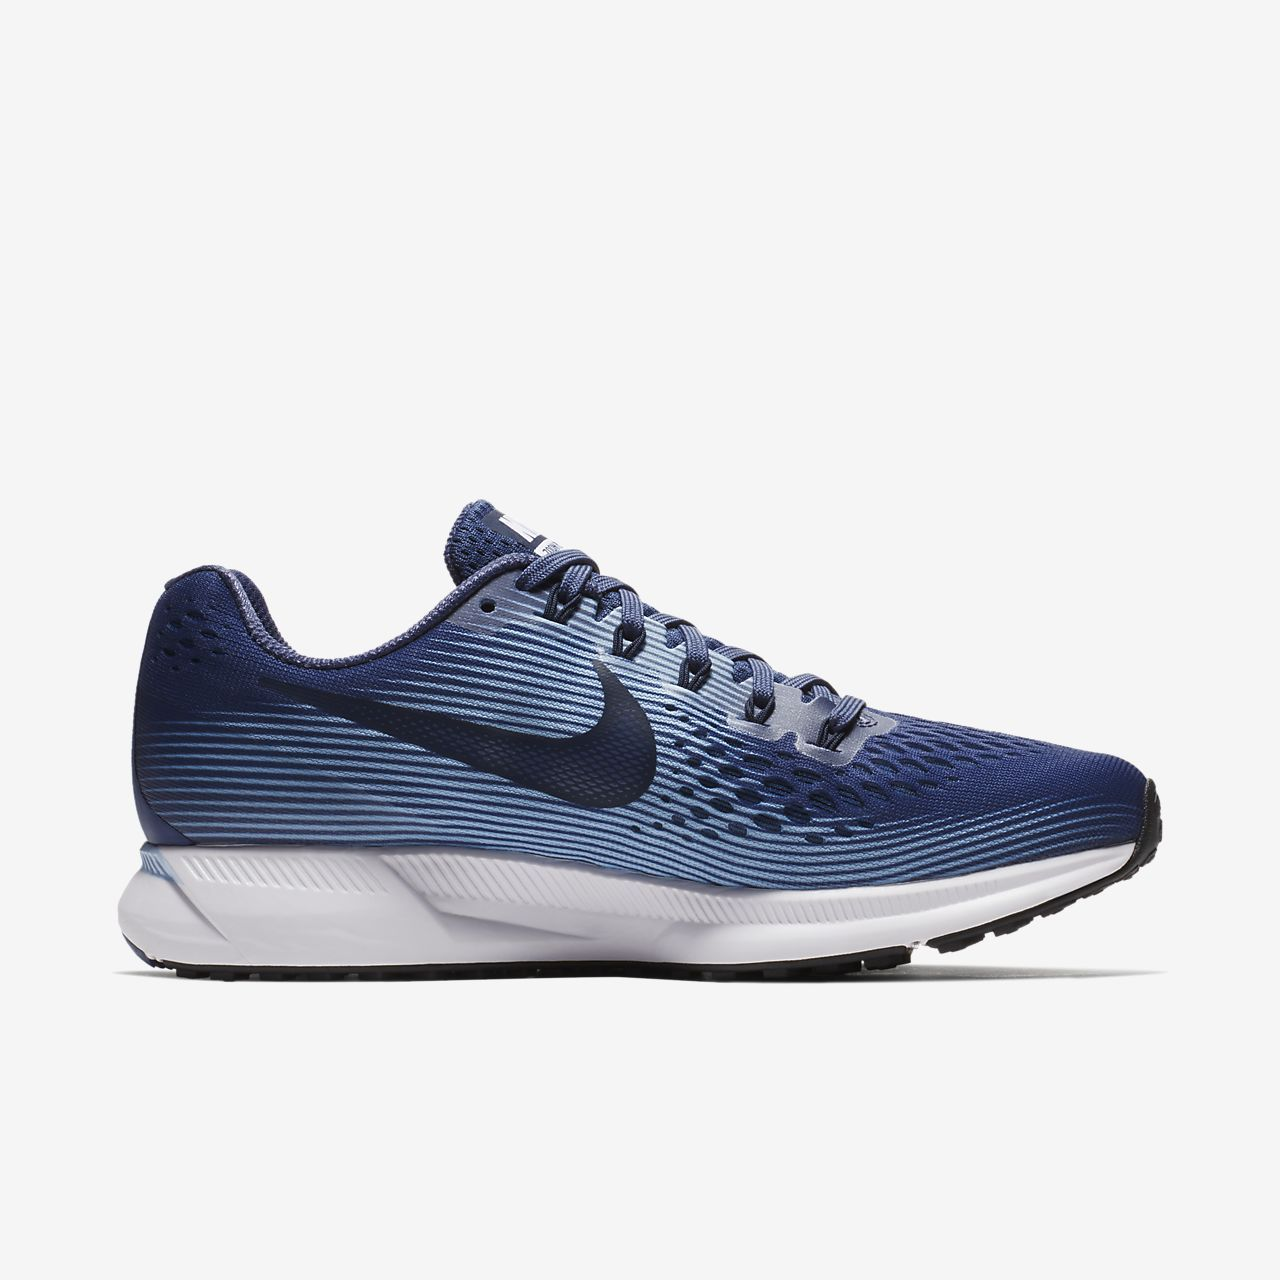 f74aa664790e62 Nike Air Zoom Pegasus 34 Women's Running Shoe | Shoes | Nike air ...